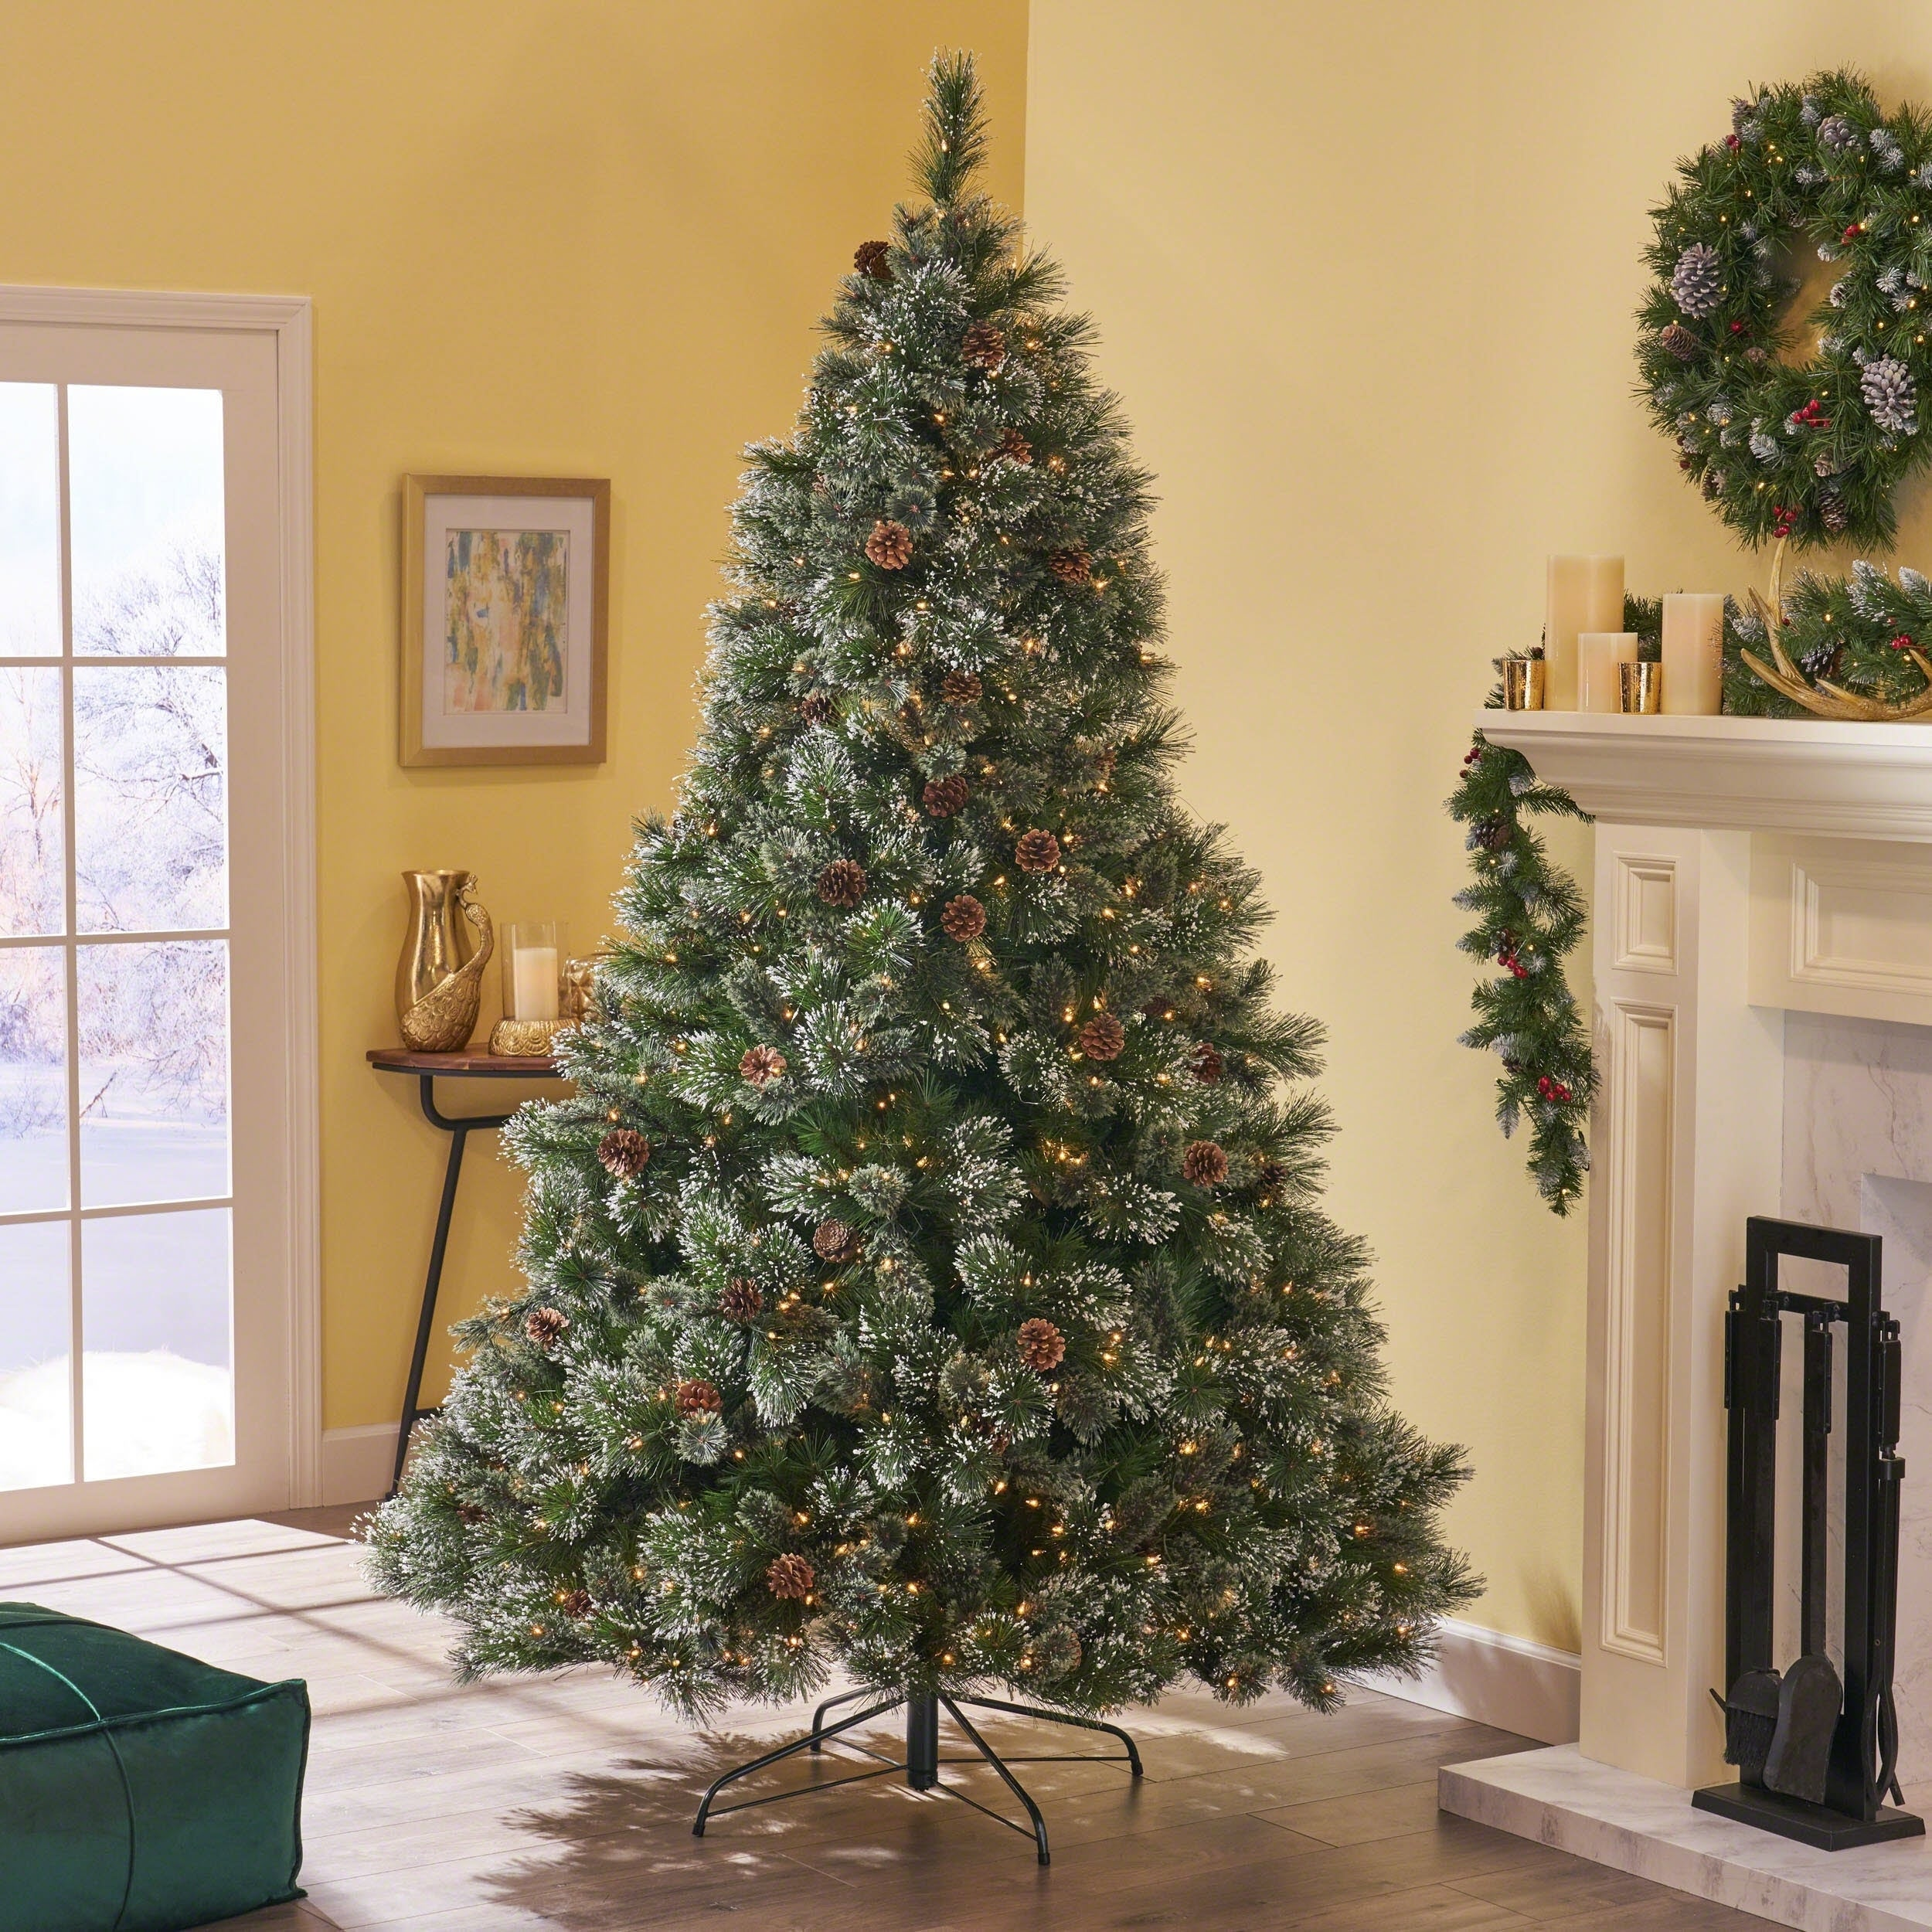 Snowy Christmas.7 5 Ft Cashmere Pine Spruce Pre Lit Or Unlit Artificial Christmas Tree With Snowy Branches Pinecones By Christopher Knight Home